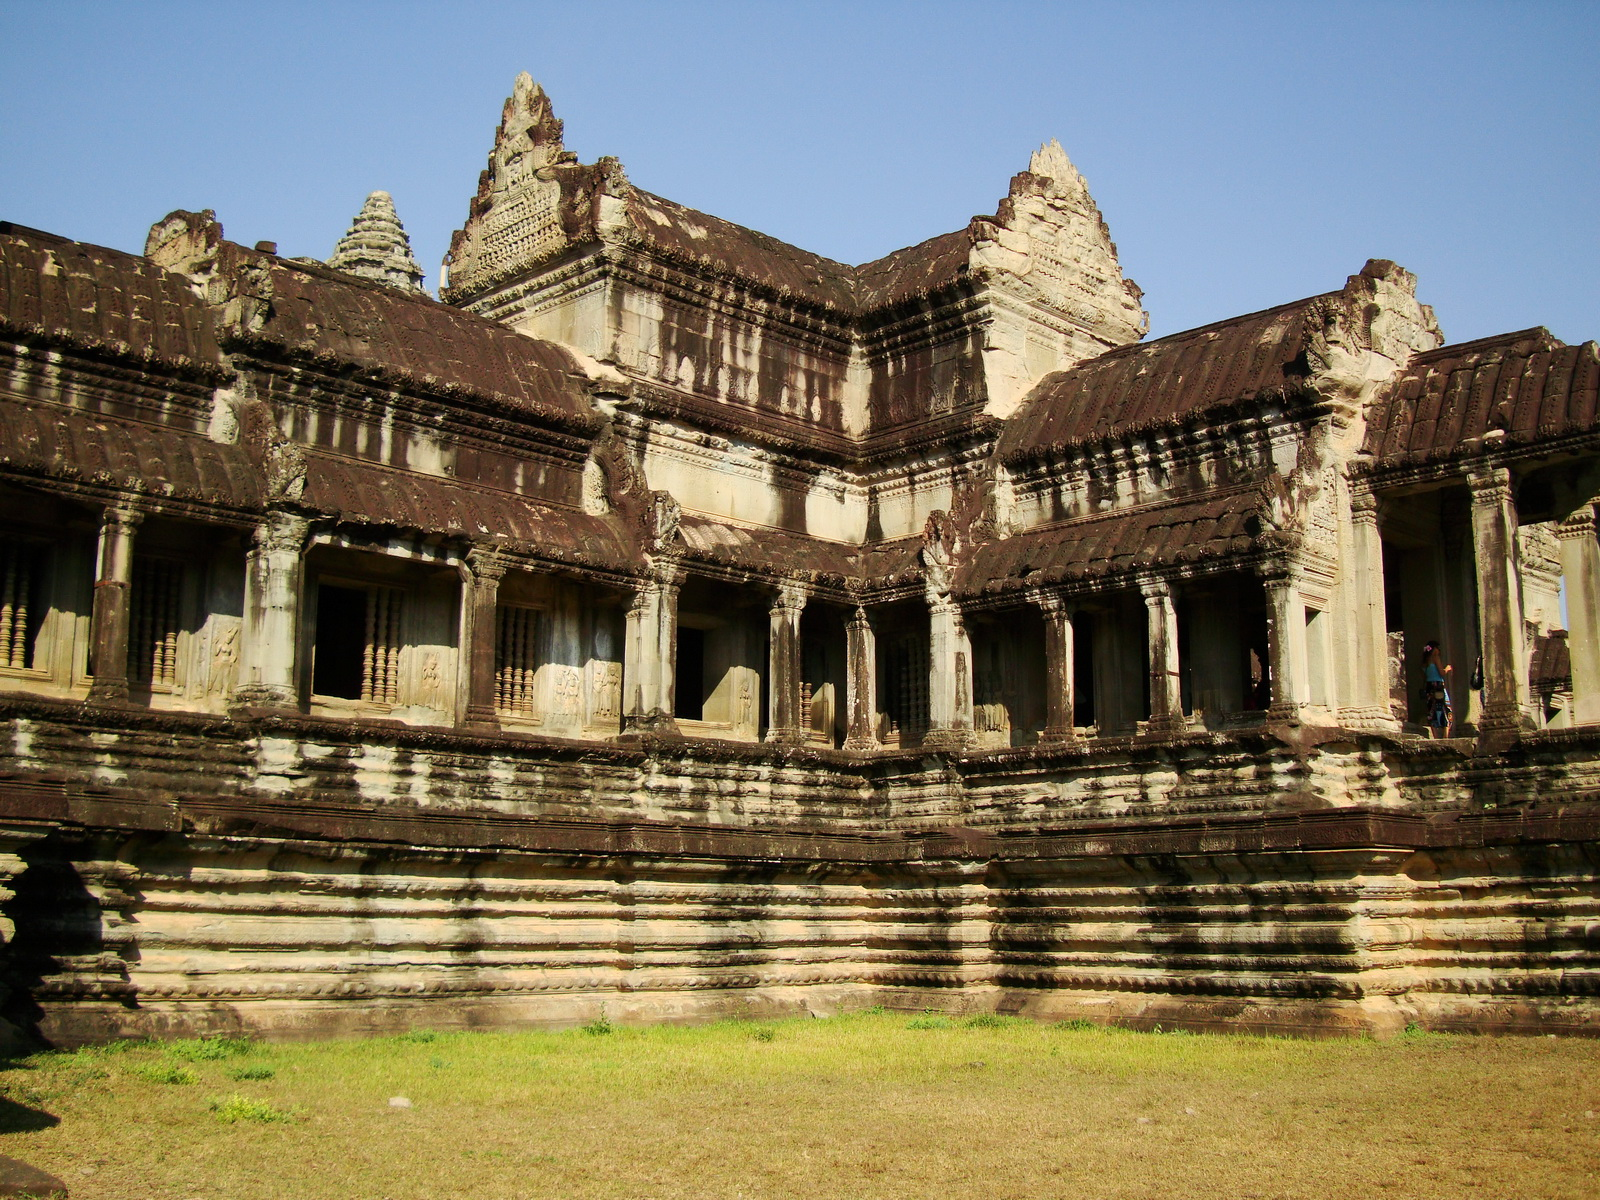 Angkor Wat Khmer architecture eastern gallery entrance 06